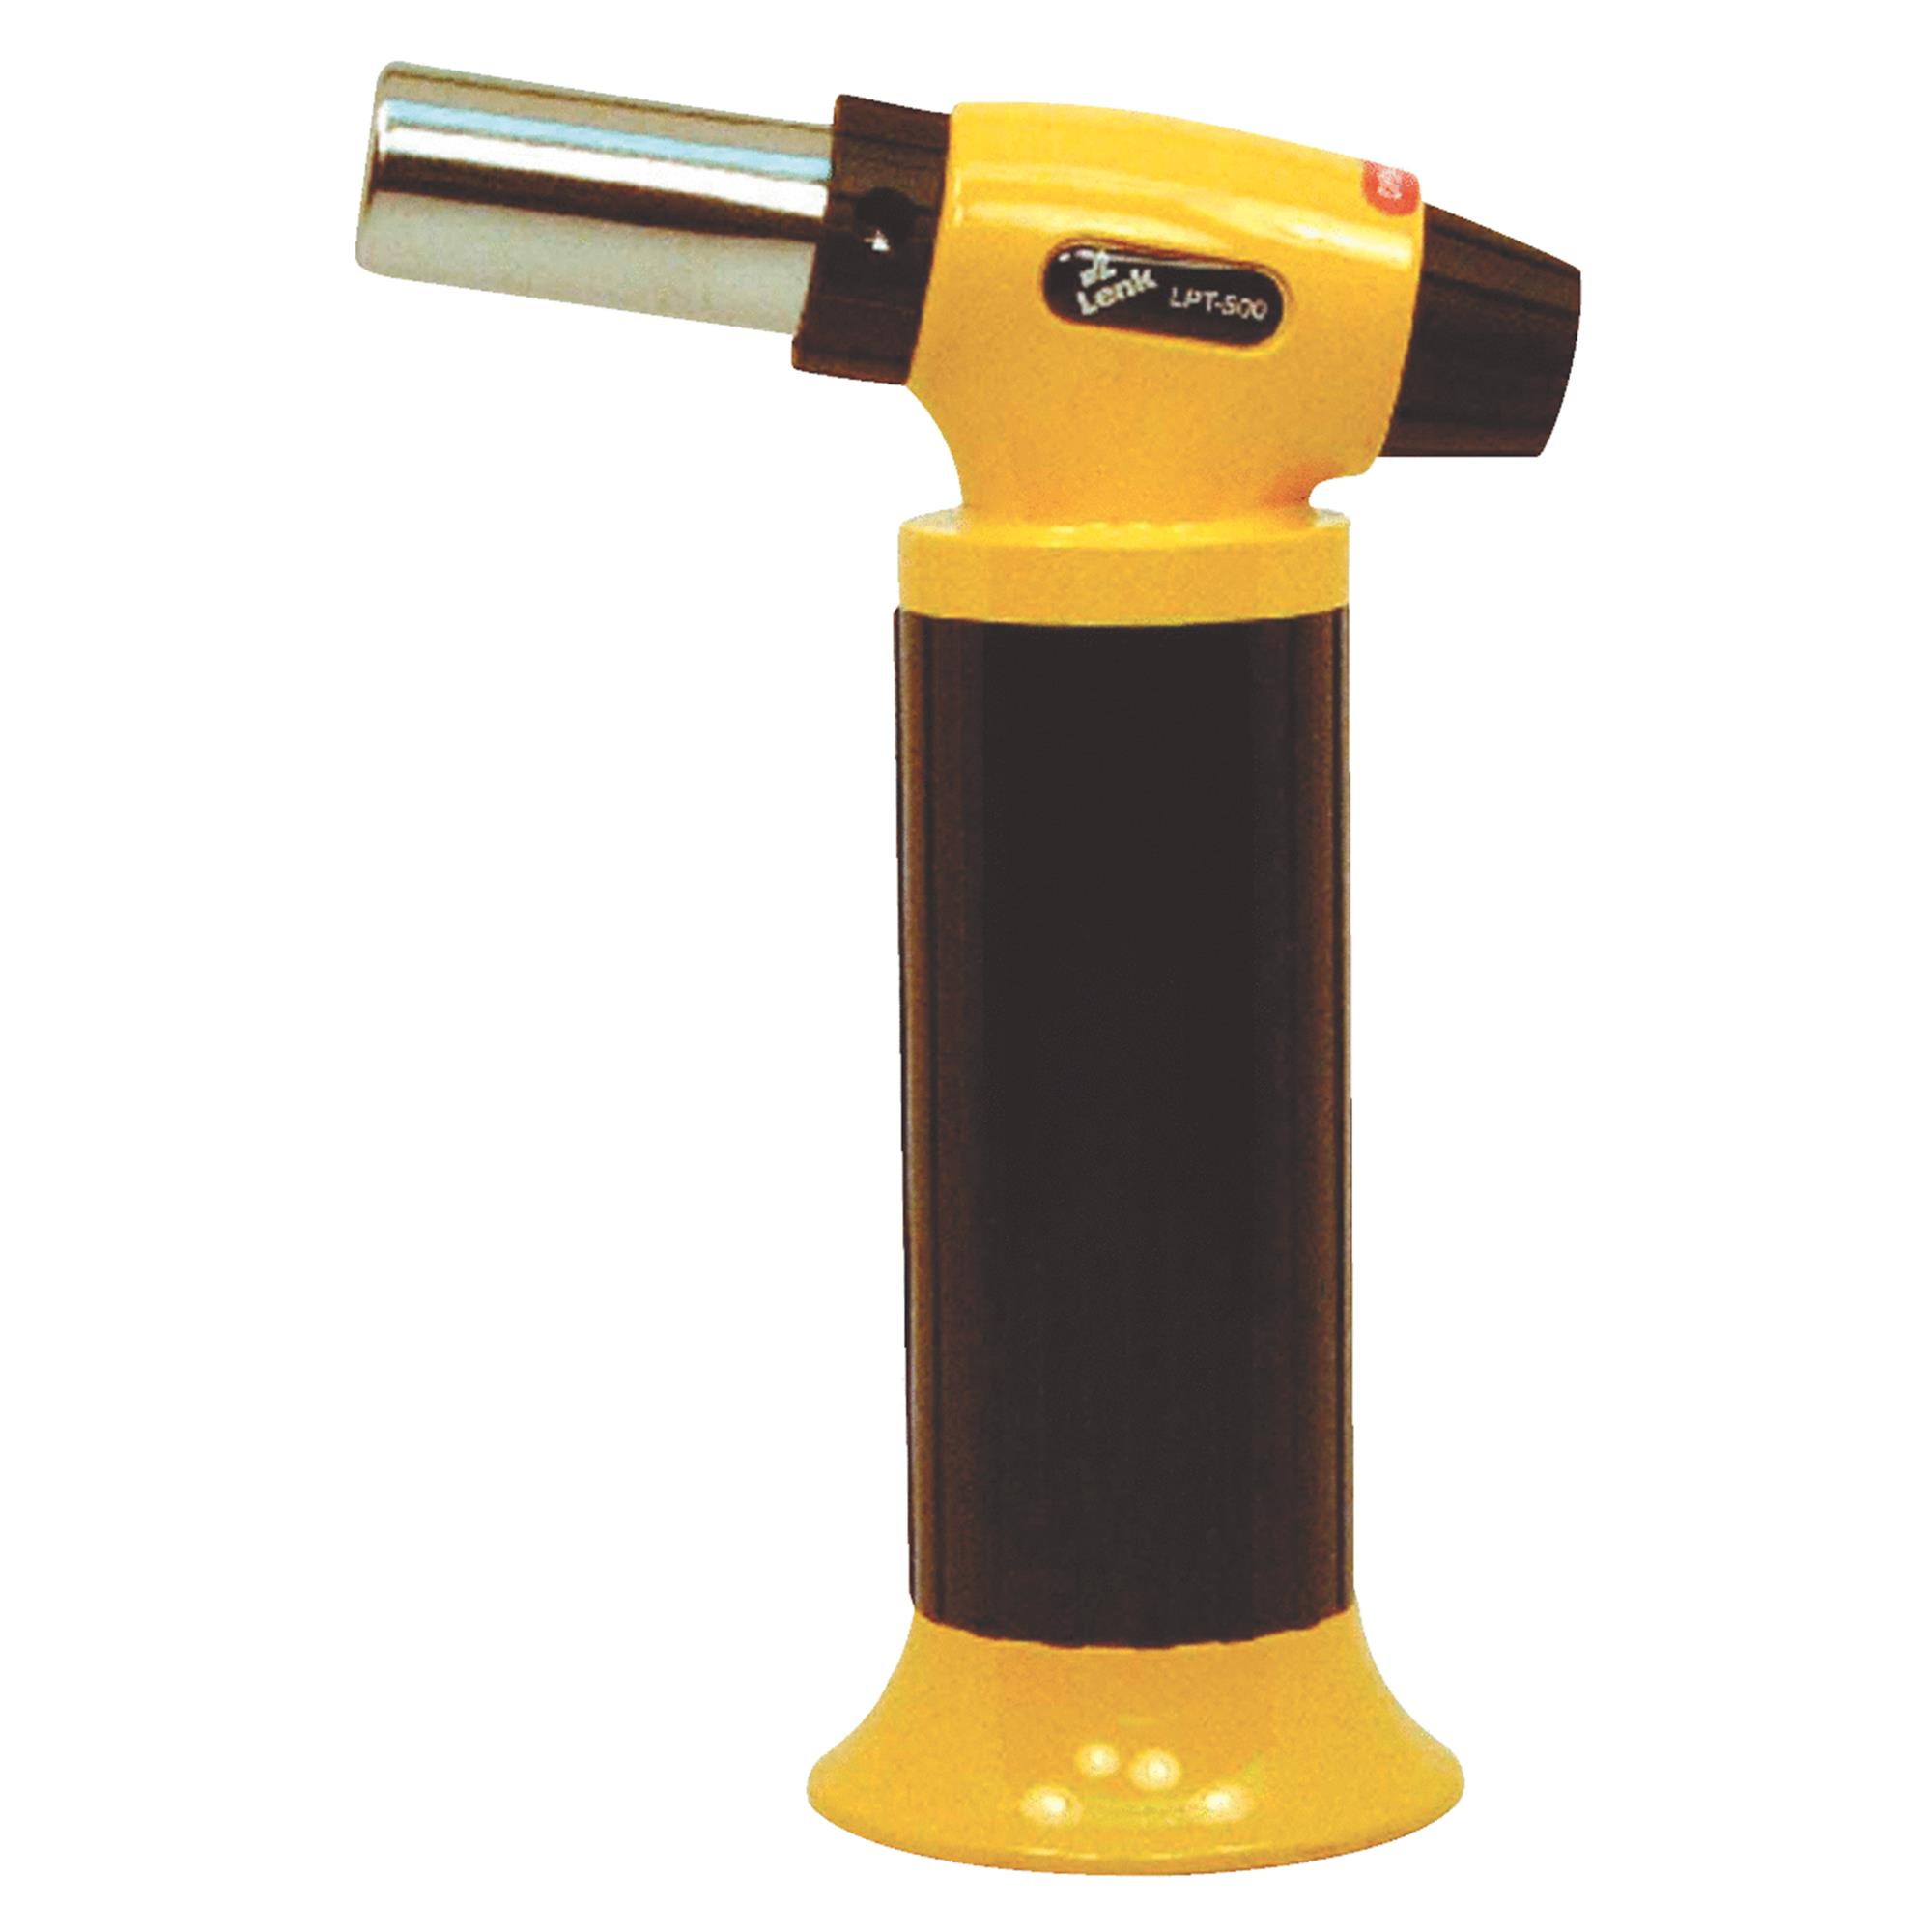 wall lenk protorch 500 micro torch